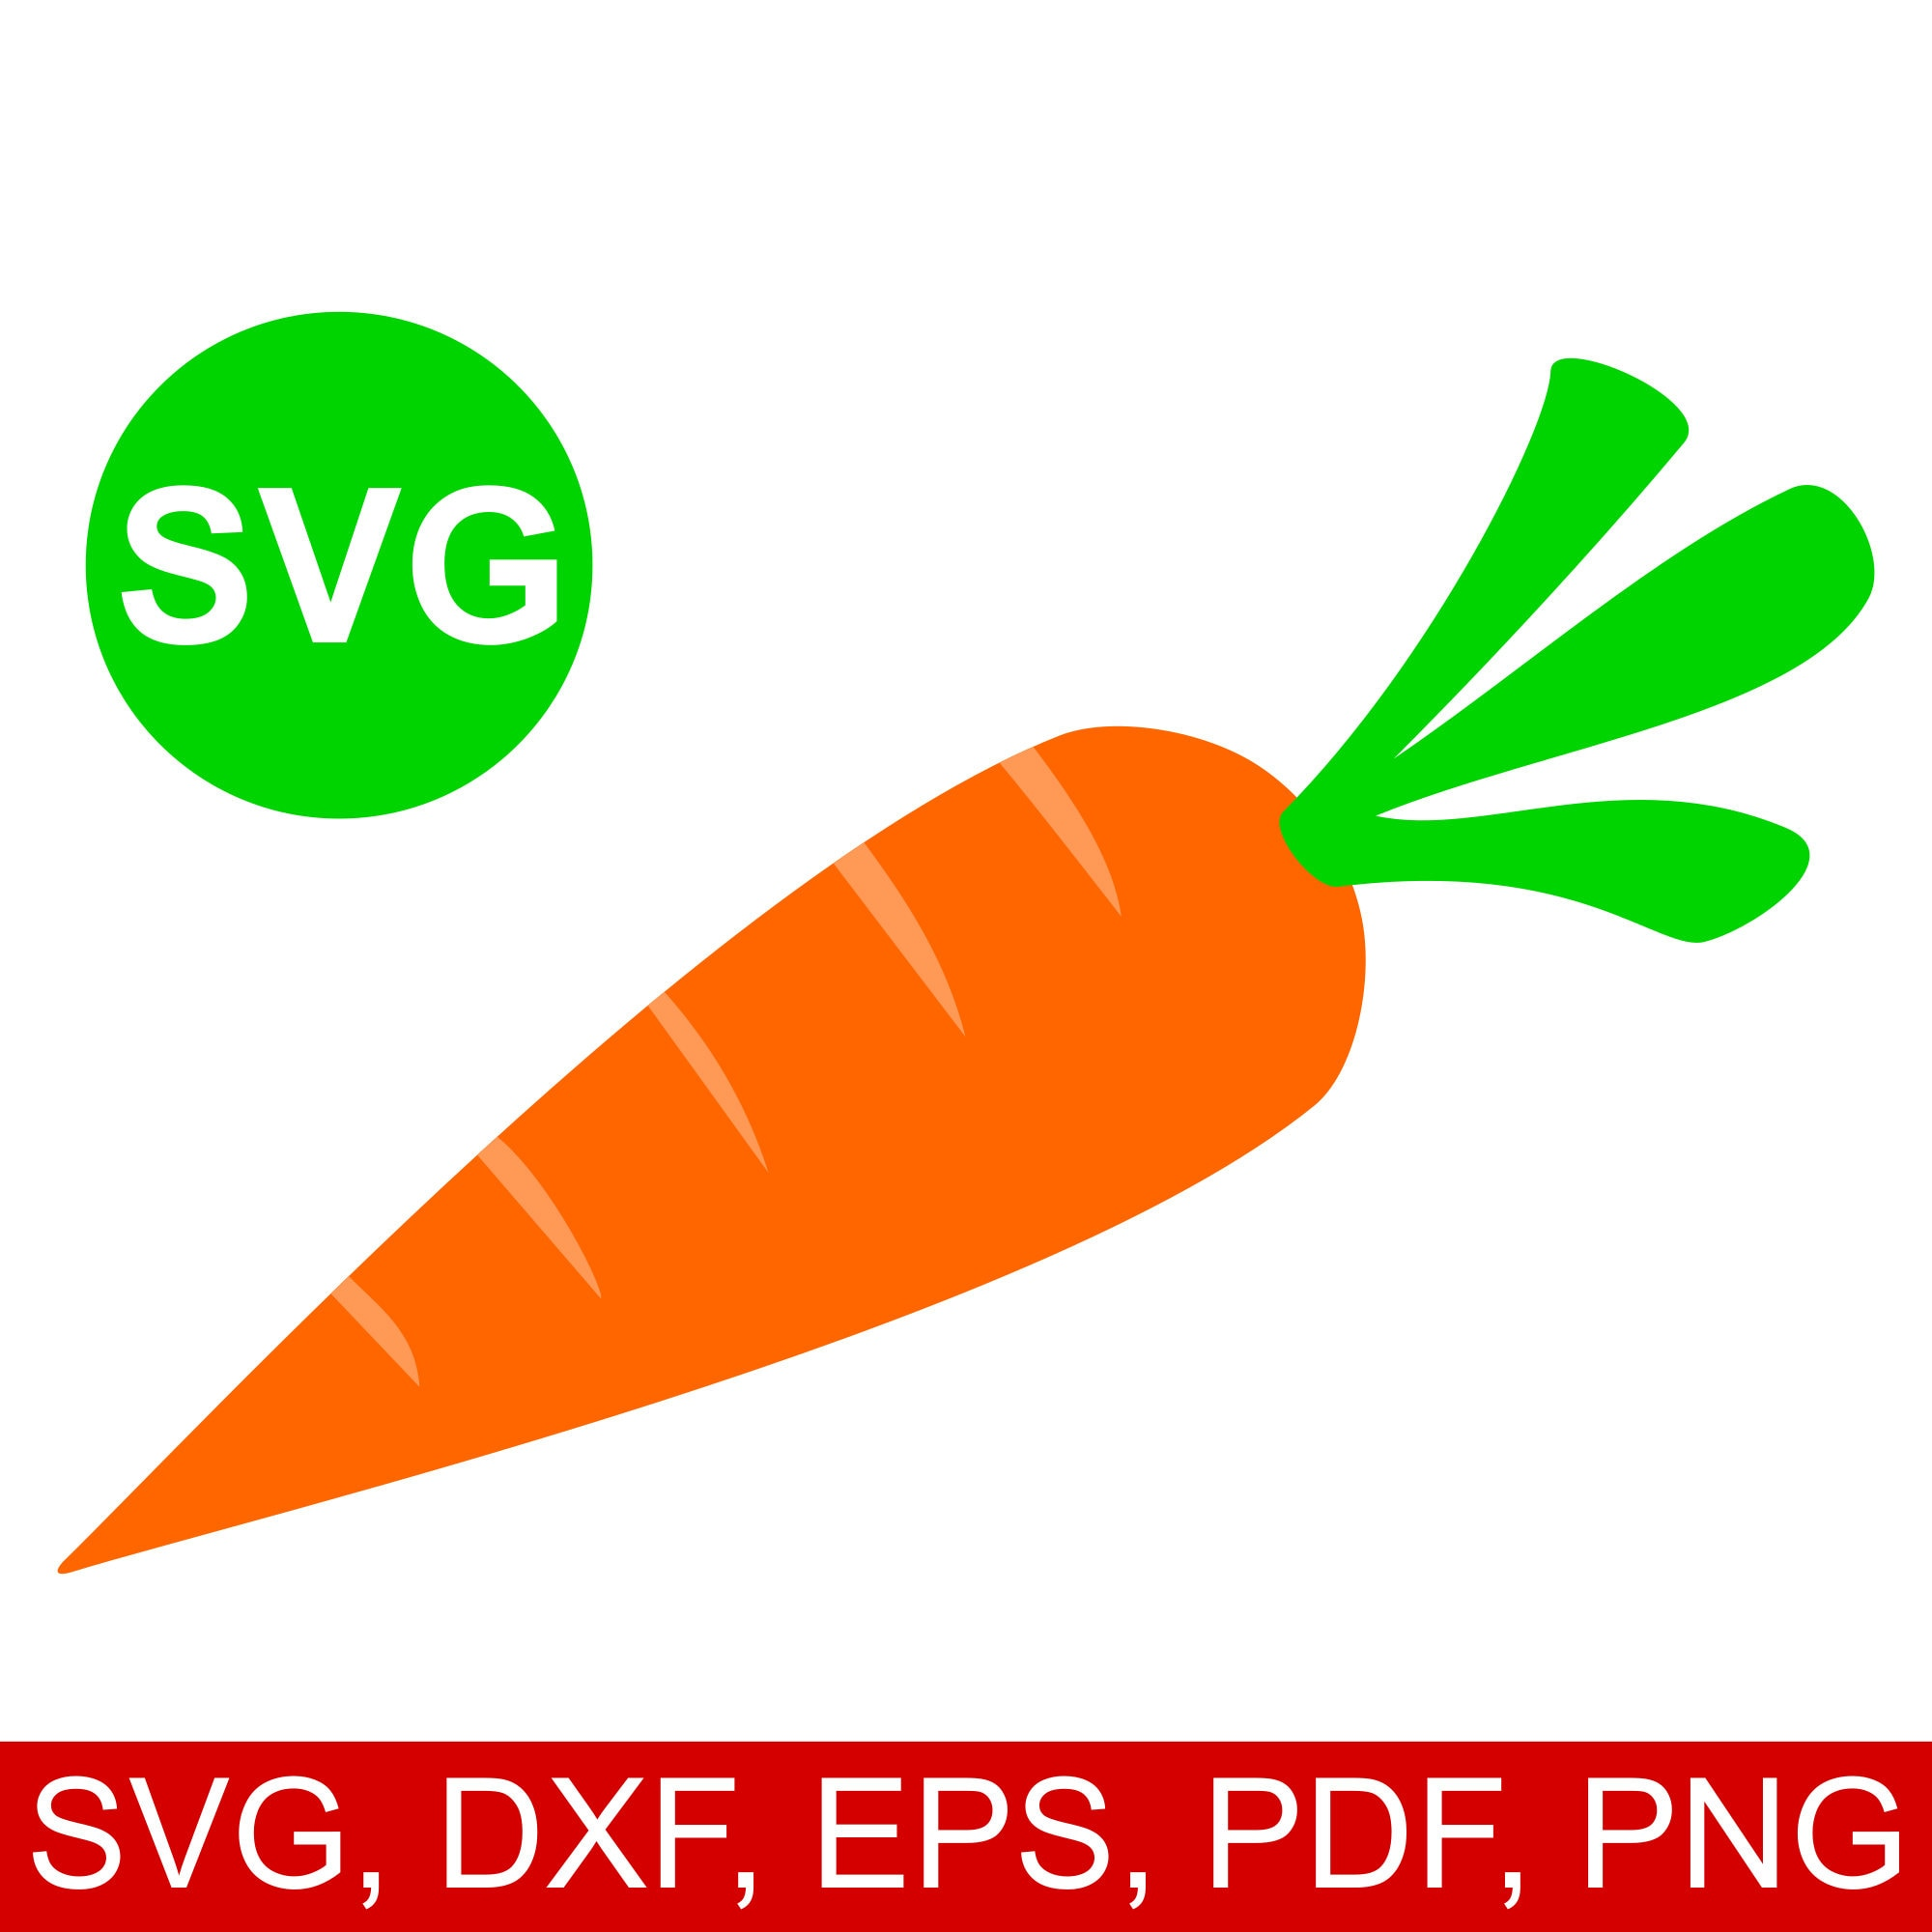 carrot svg file carrot dxf carrot clipart carrot printable rh etsy com clip art carrots clipart carrot black and white